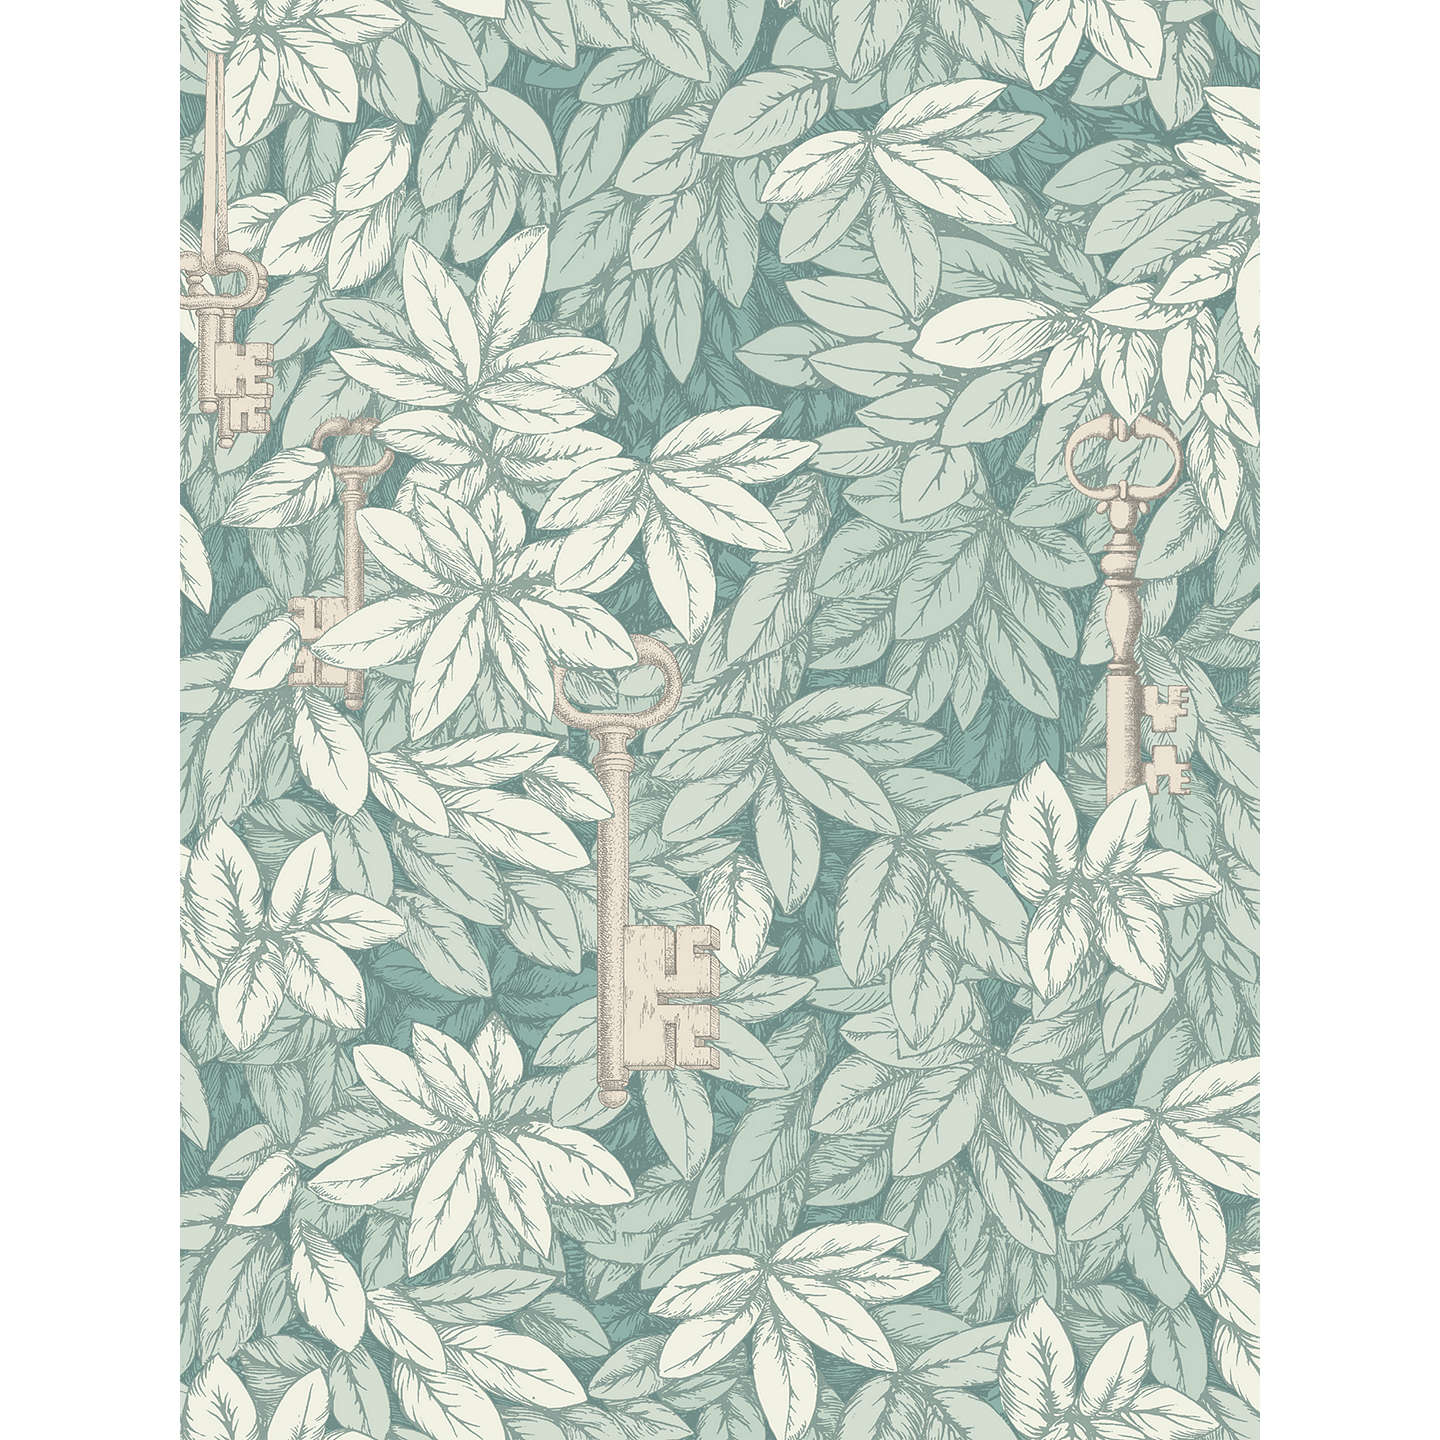 BuyCole Son Chiavi Segrete Paste The Wall Wallpaper 97 4011 Online At Johnlewis